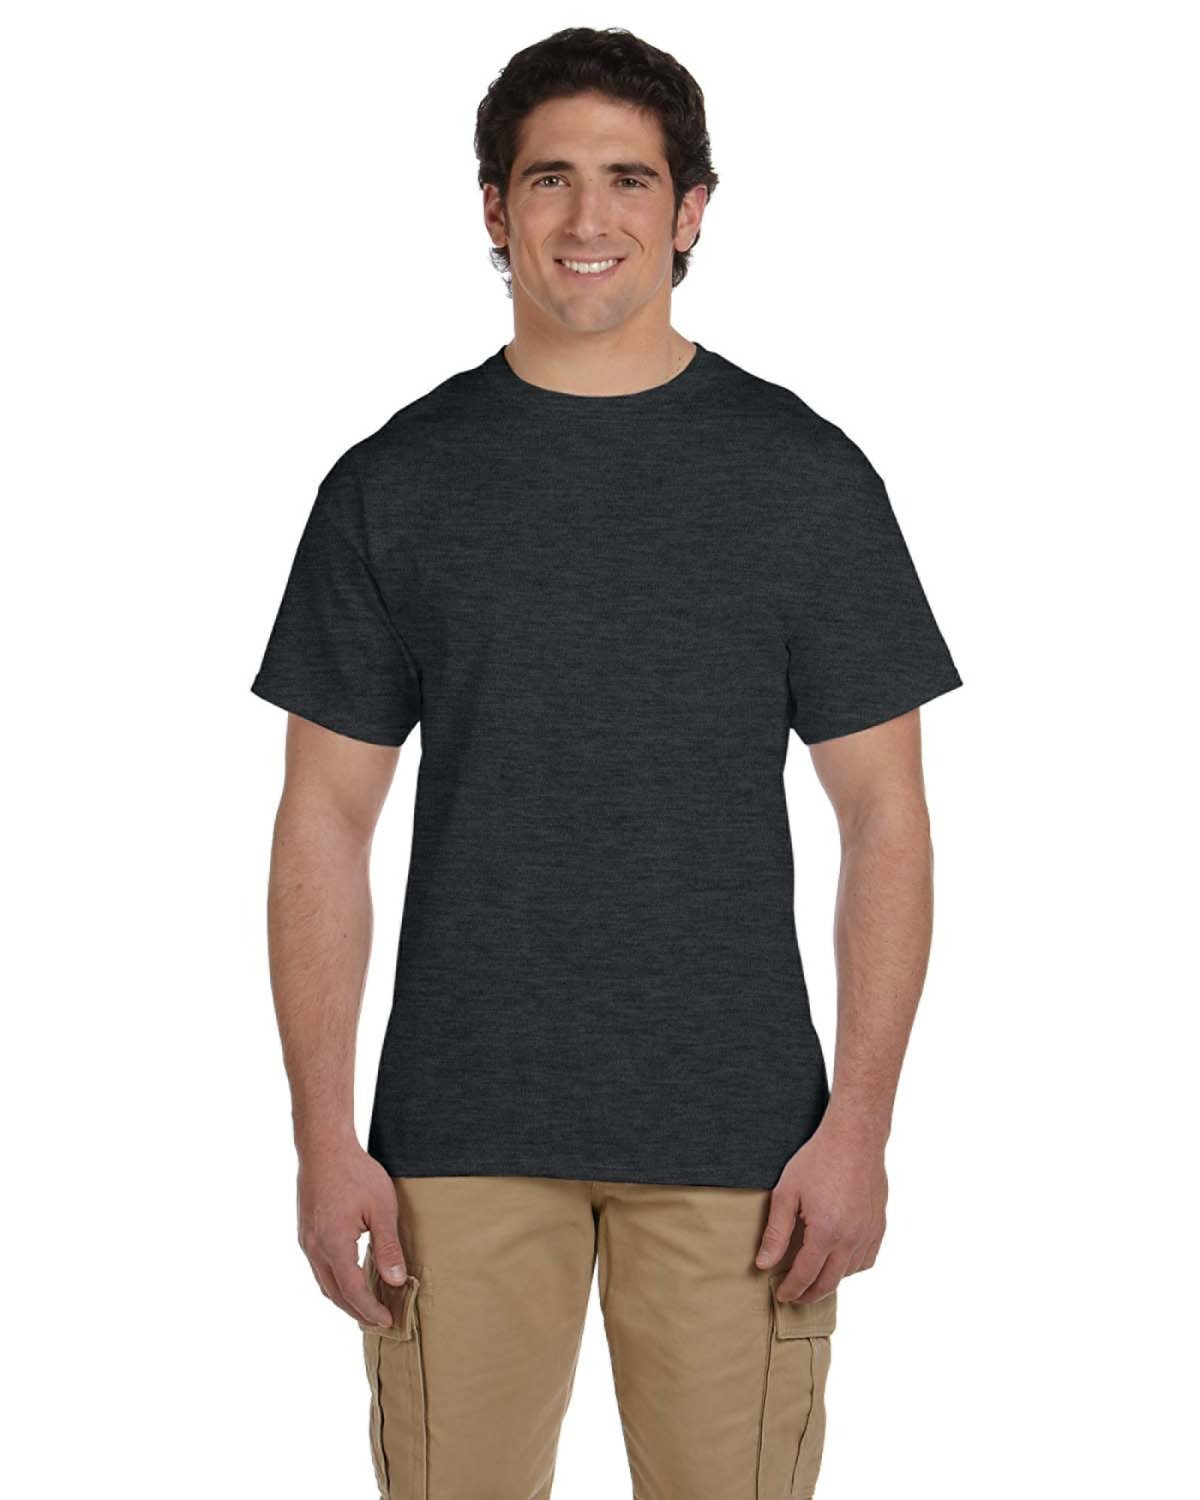 Fruit of the Loom Adult HD Cotton™ T-Shirt BLACK HEATHER